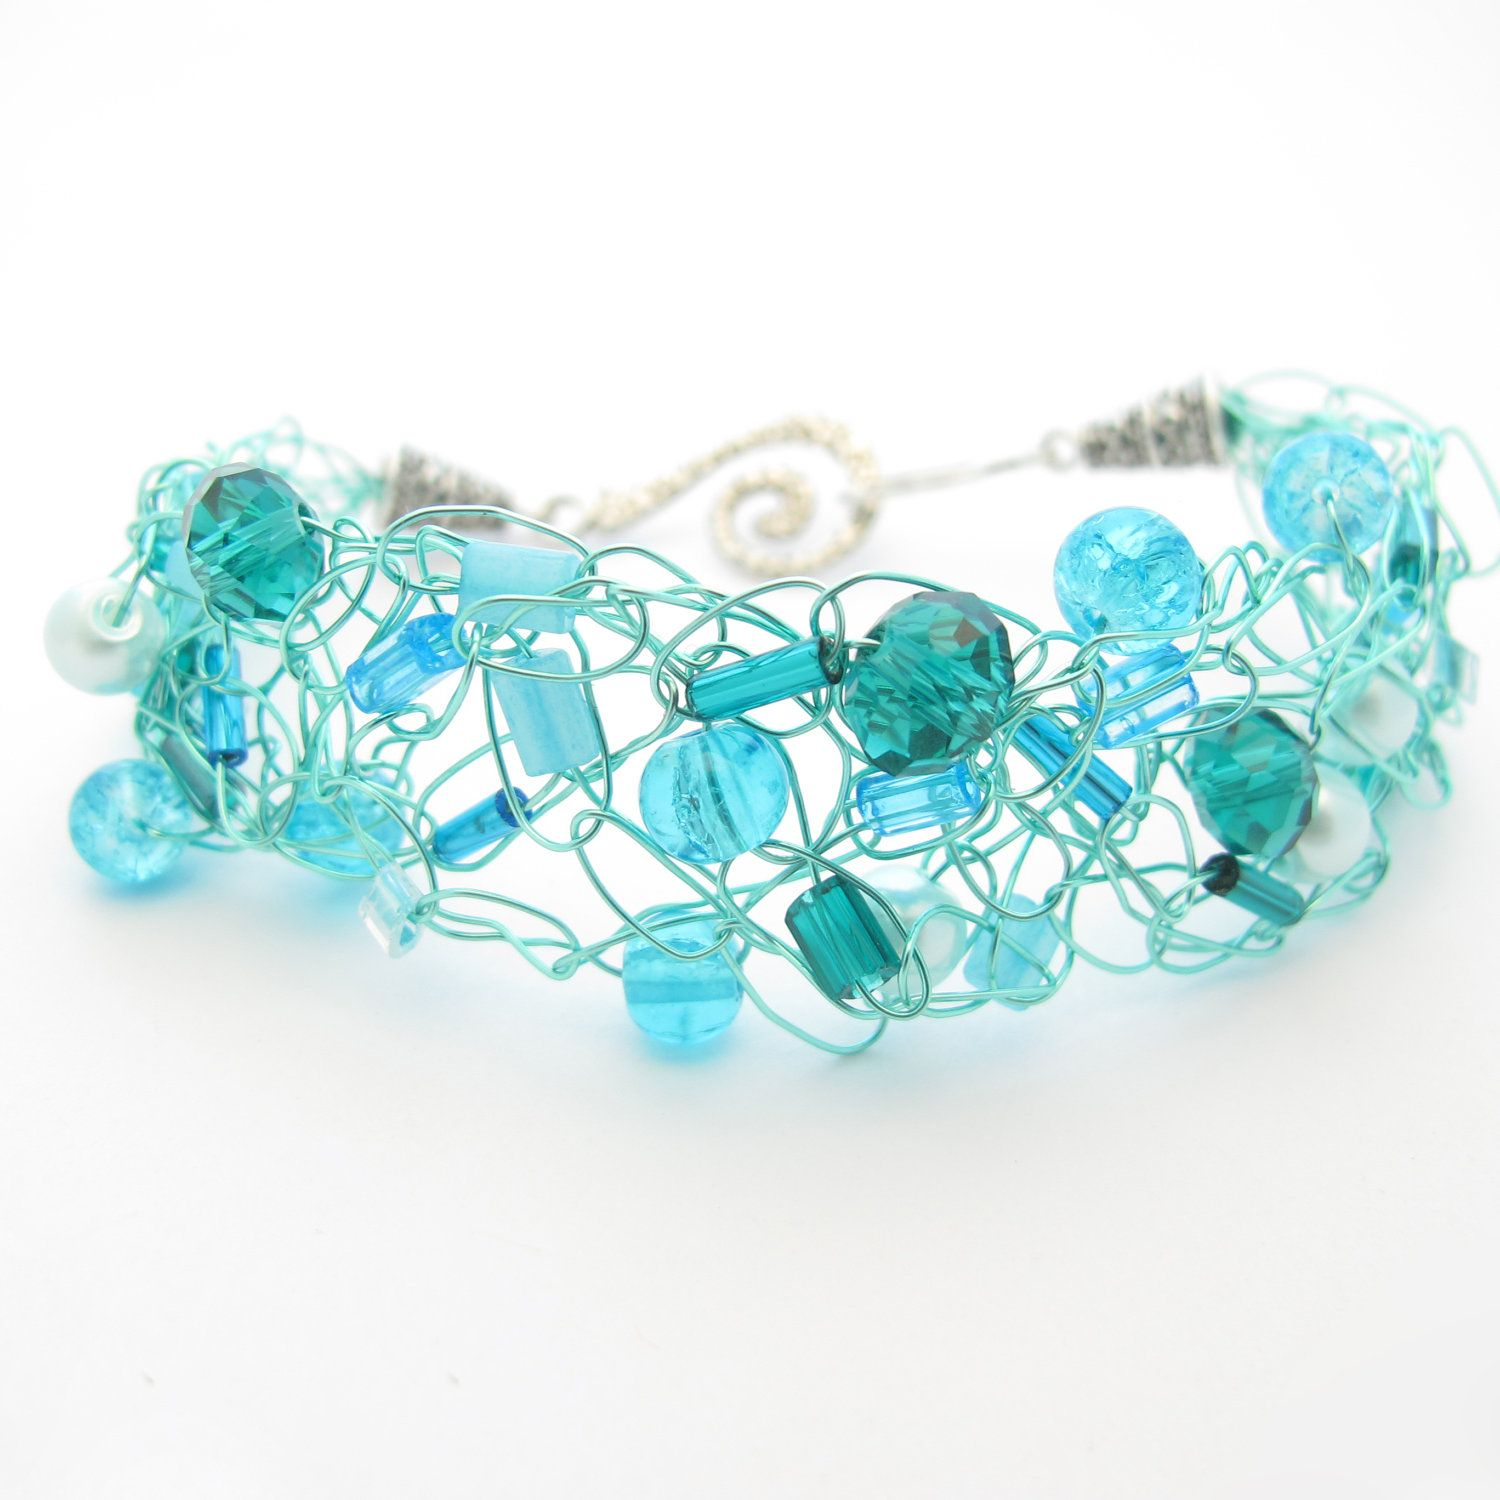 aqua teal turquoise | Wire Crochet Beaded Bracelet - Aqua, Teal, and Turquoise